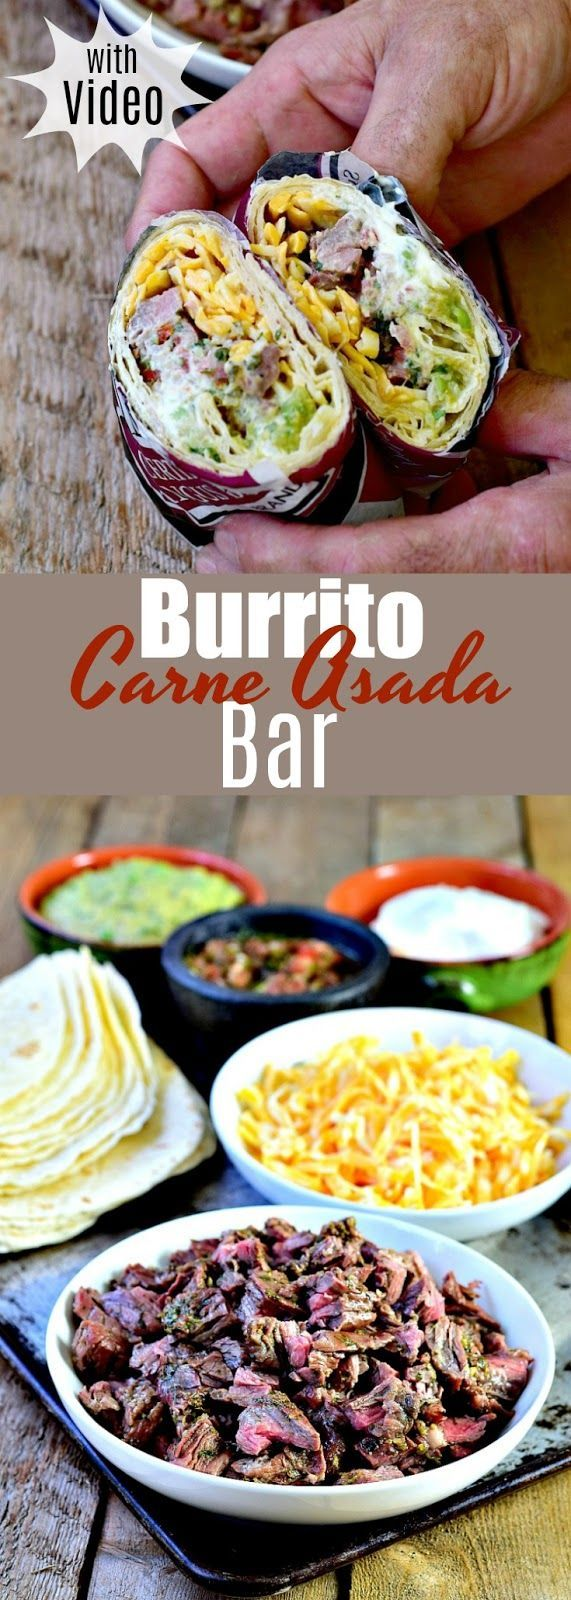 The best Carne Asada marinade recipe ever! The marinade is so full of flavor you'll never want to use anything else ever again! Make this Carne Asada Burrito Bar the center of your next party or family dinner night.  |